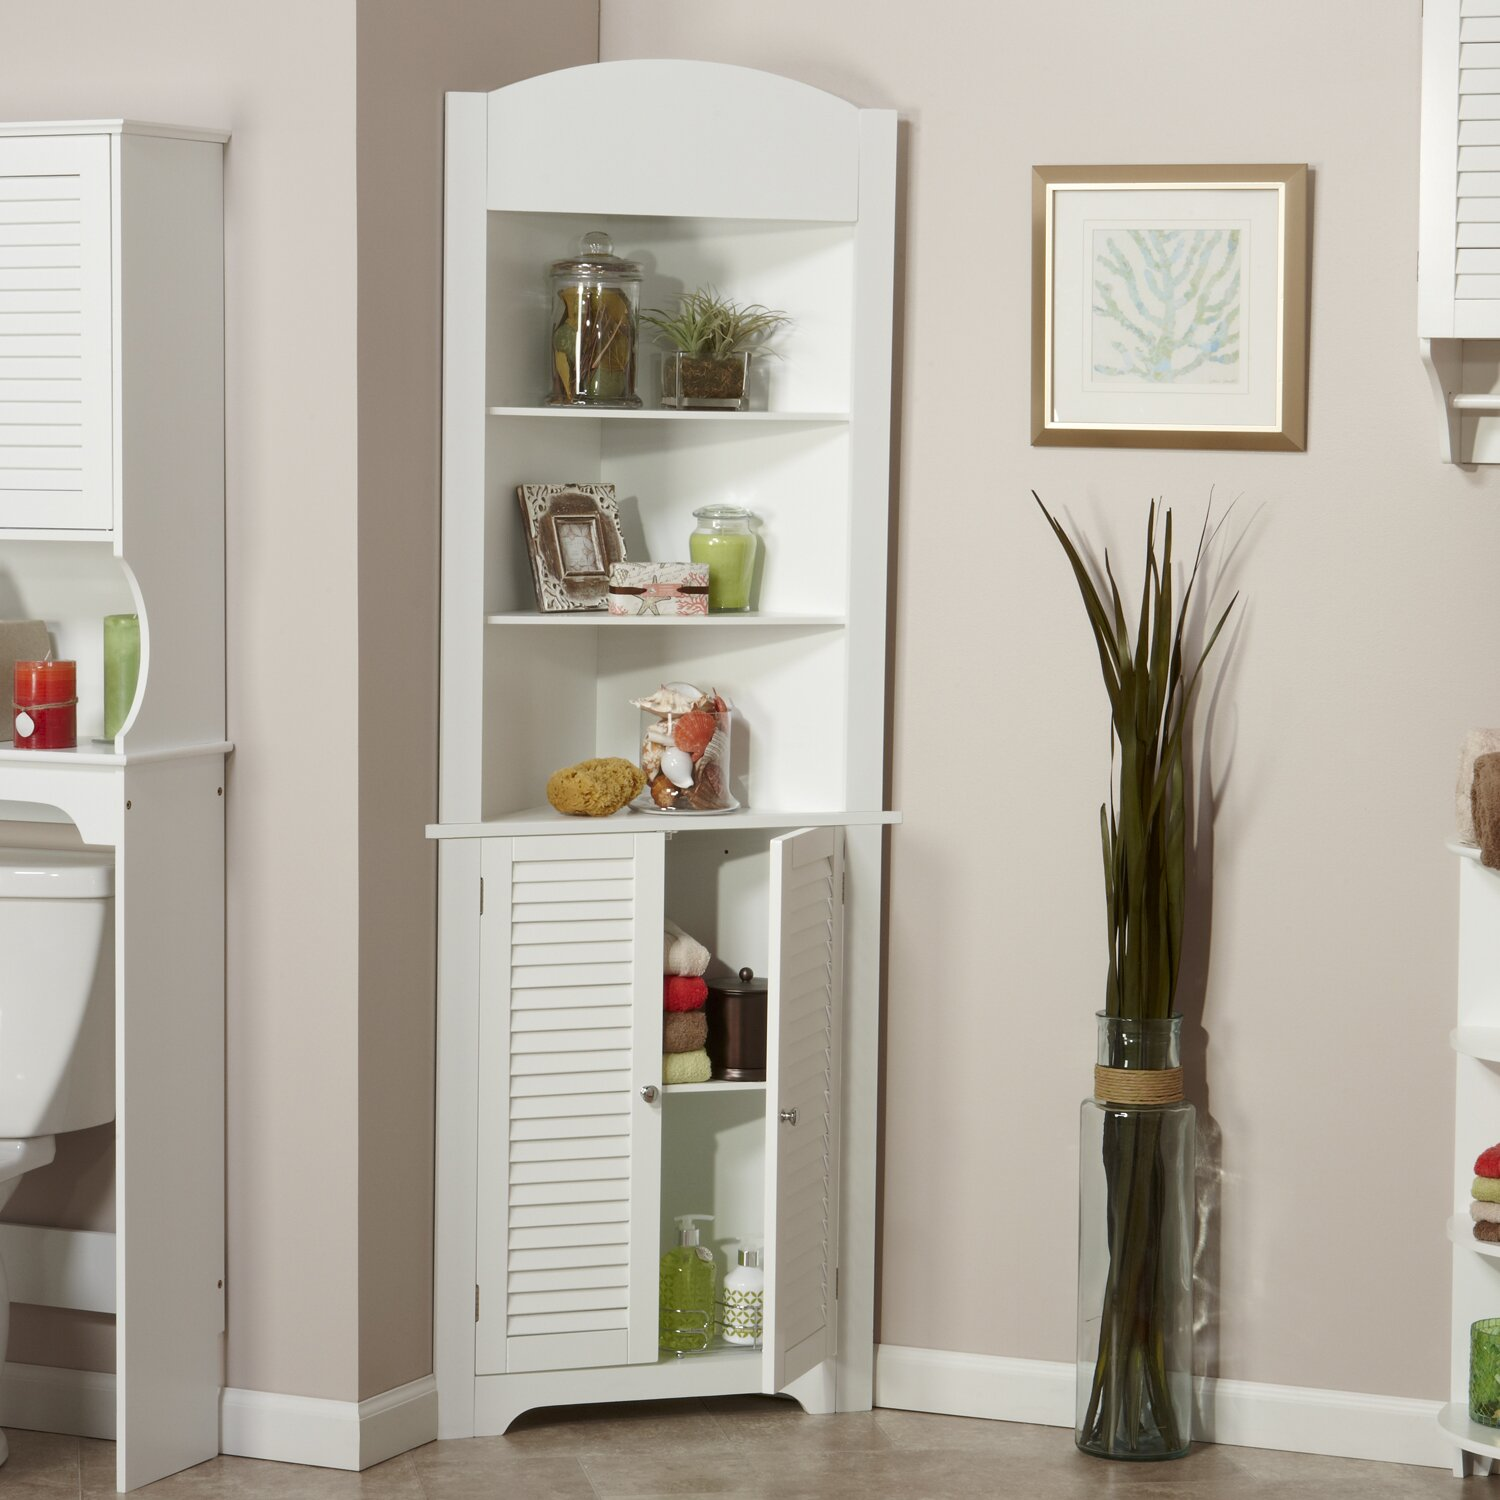 Pantry Cabinet: Free Standing Corner Pantry Cabinet with Amazon ...